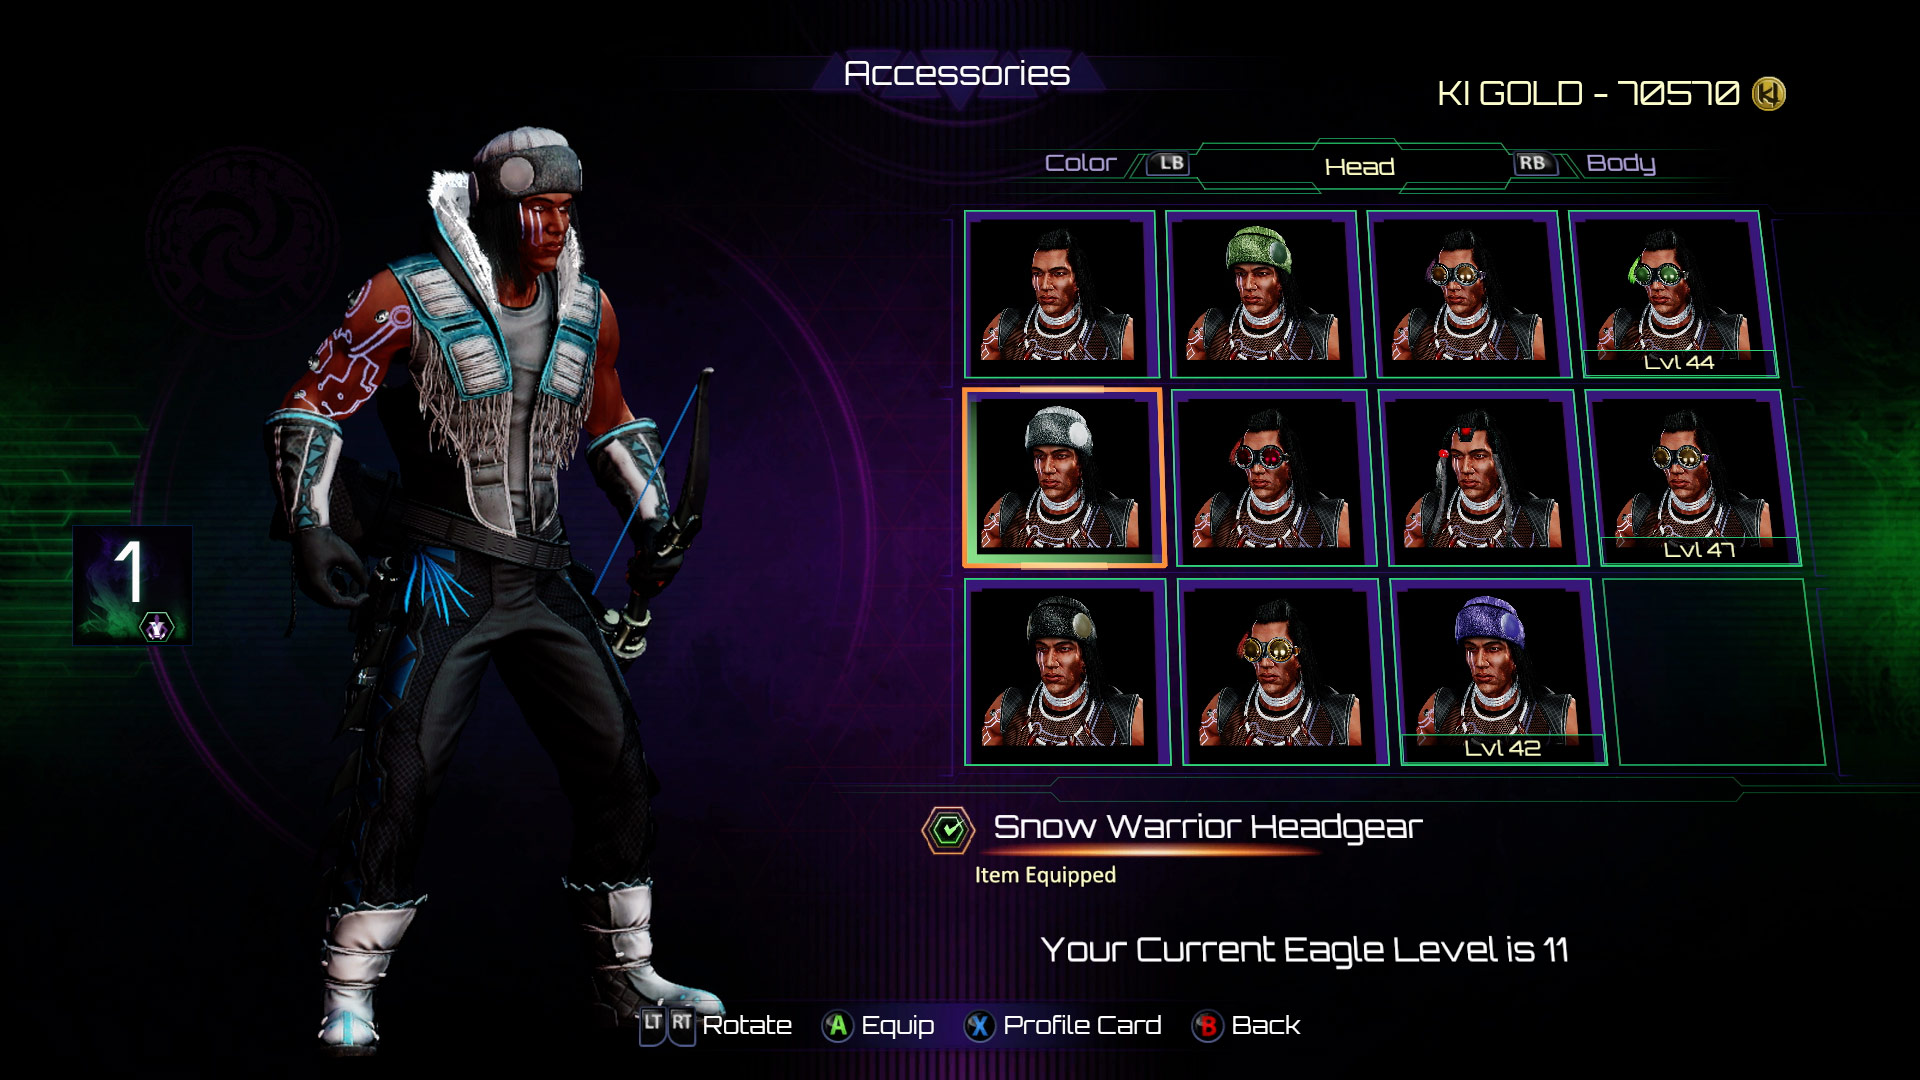 Eagle's accessories in Killer Instinct 2 out of 8 image gallery